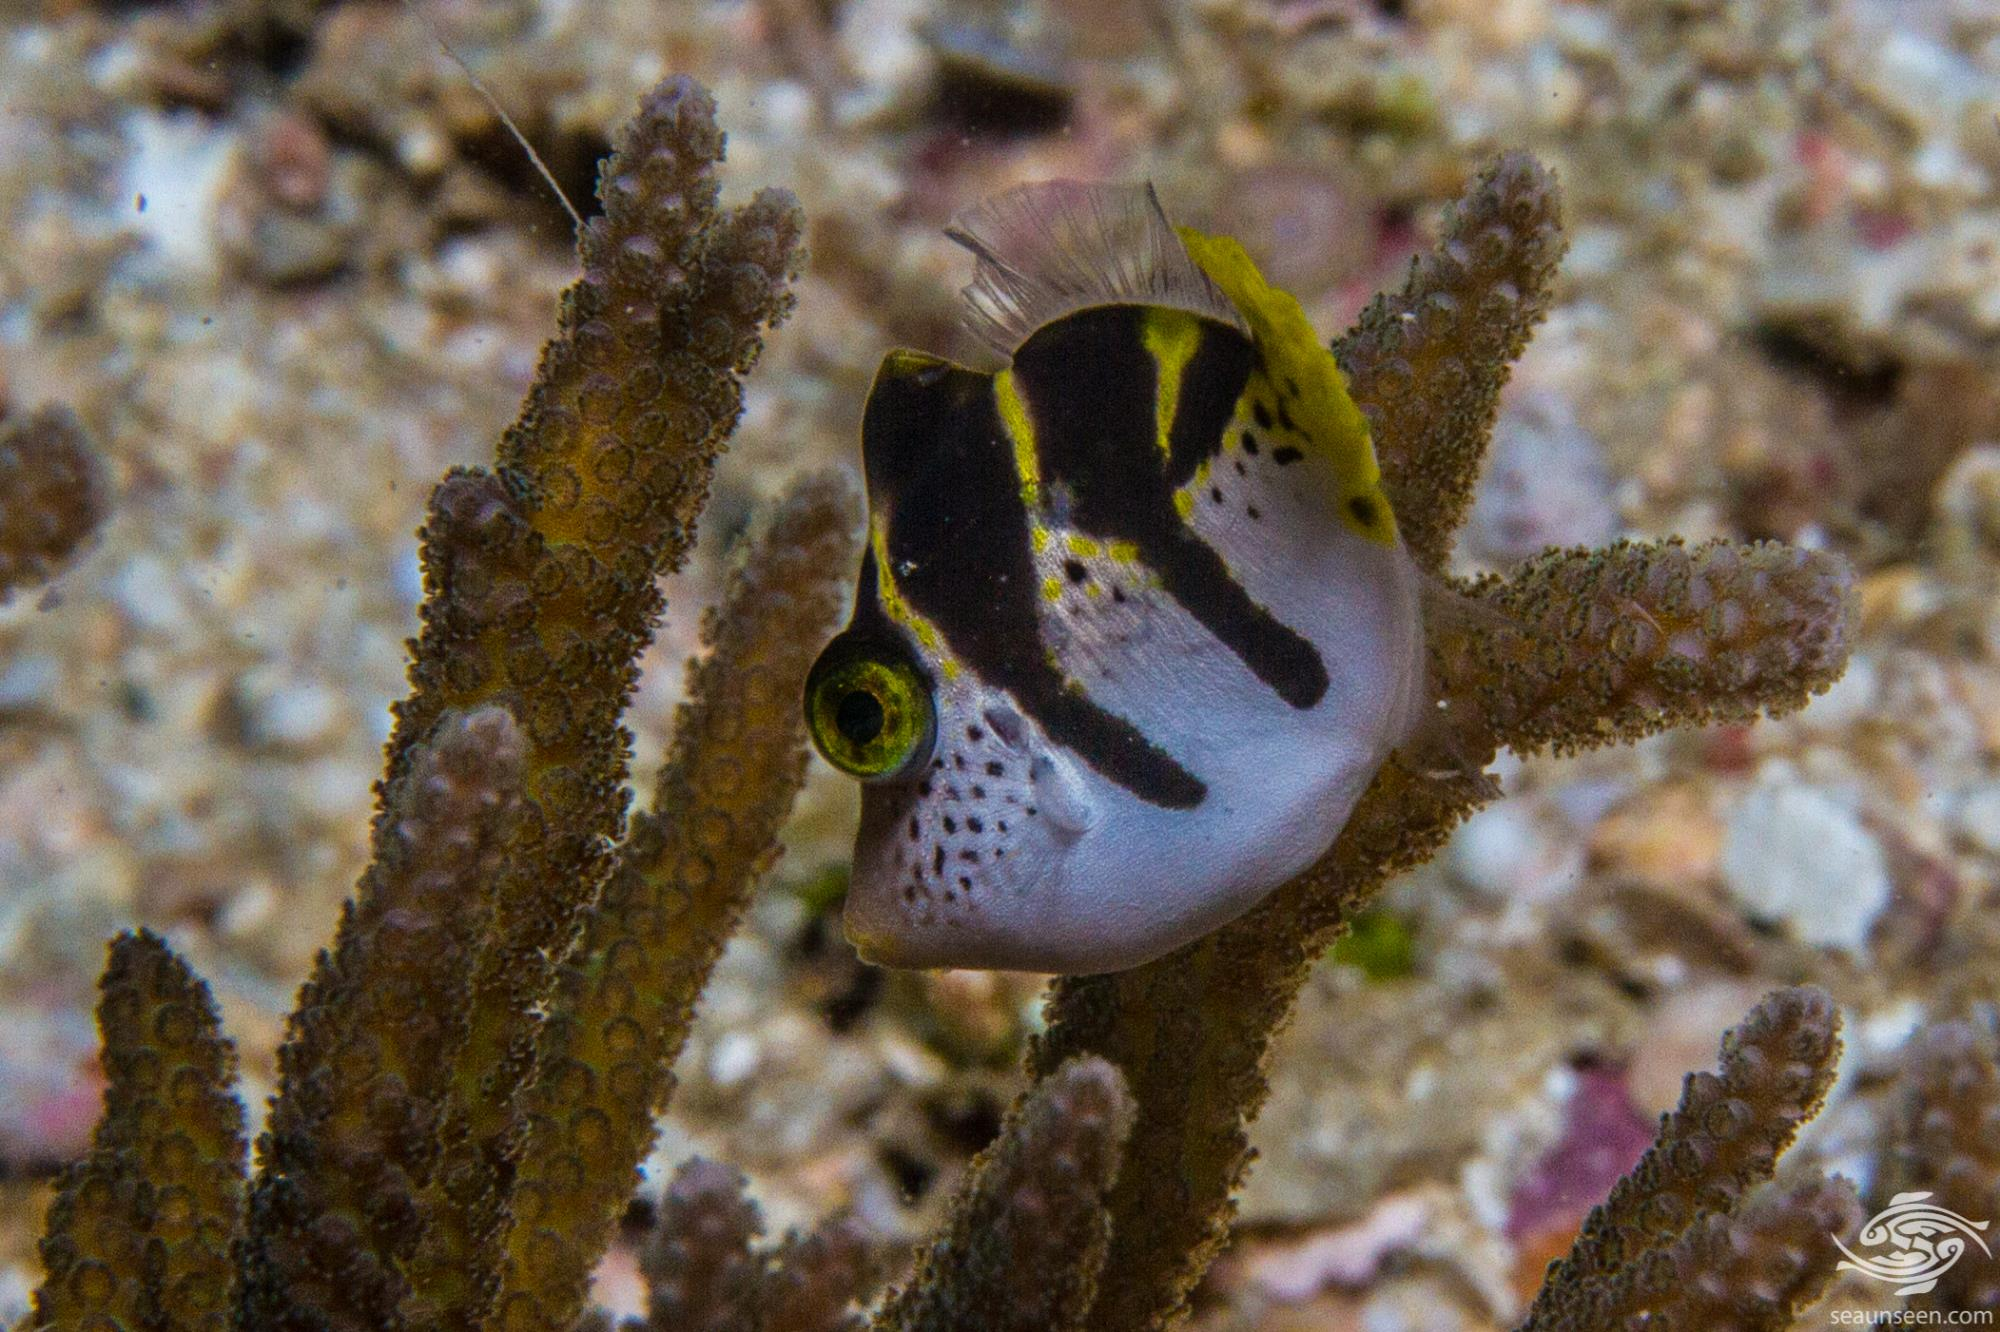 Blacksaddle filefish, Paraluteres prionurus